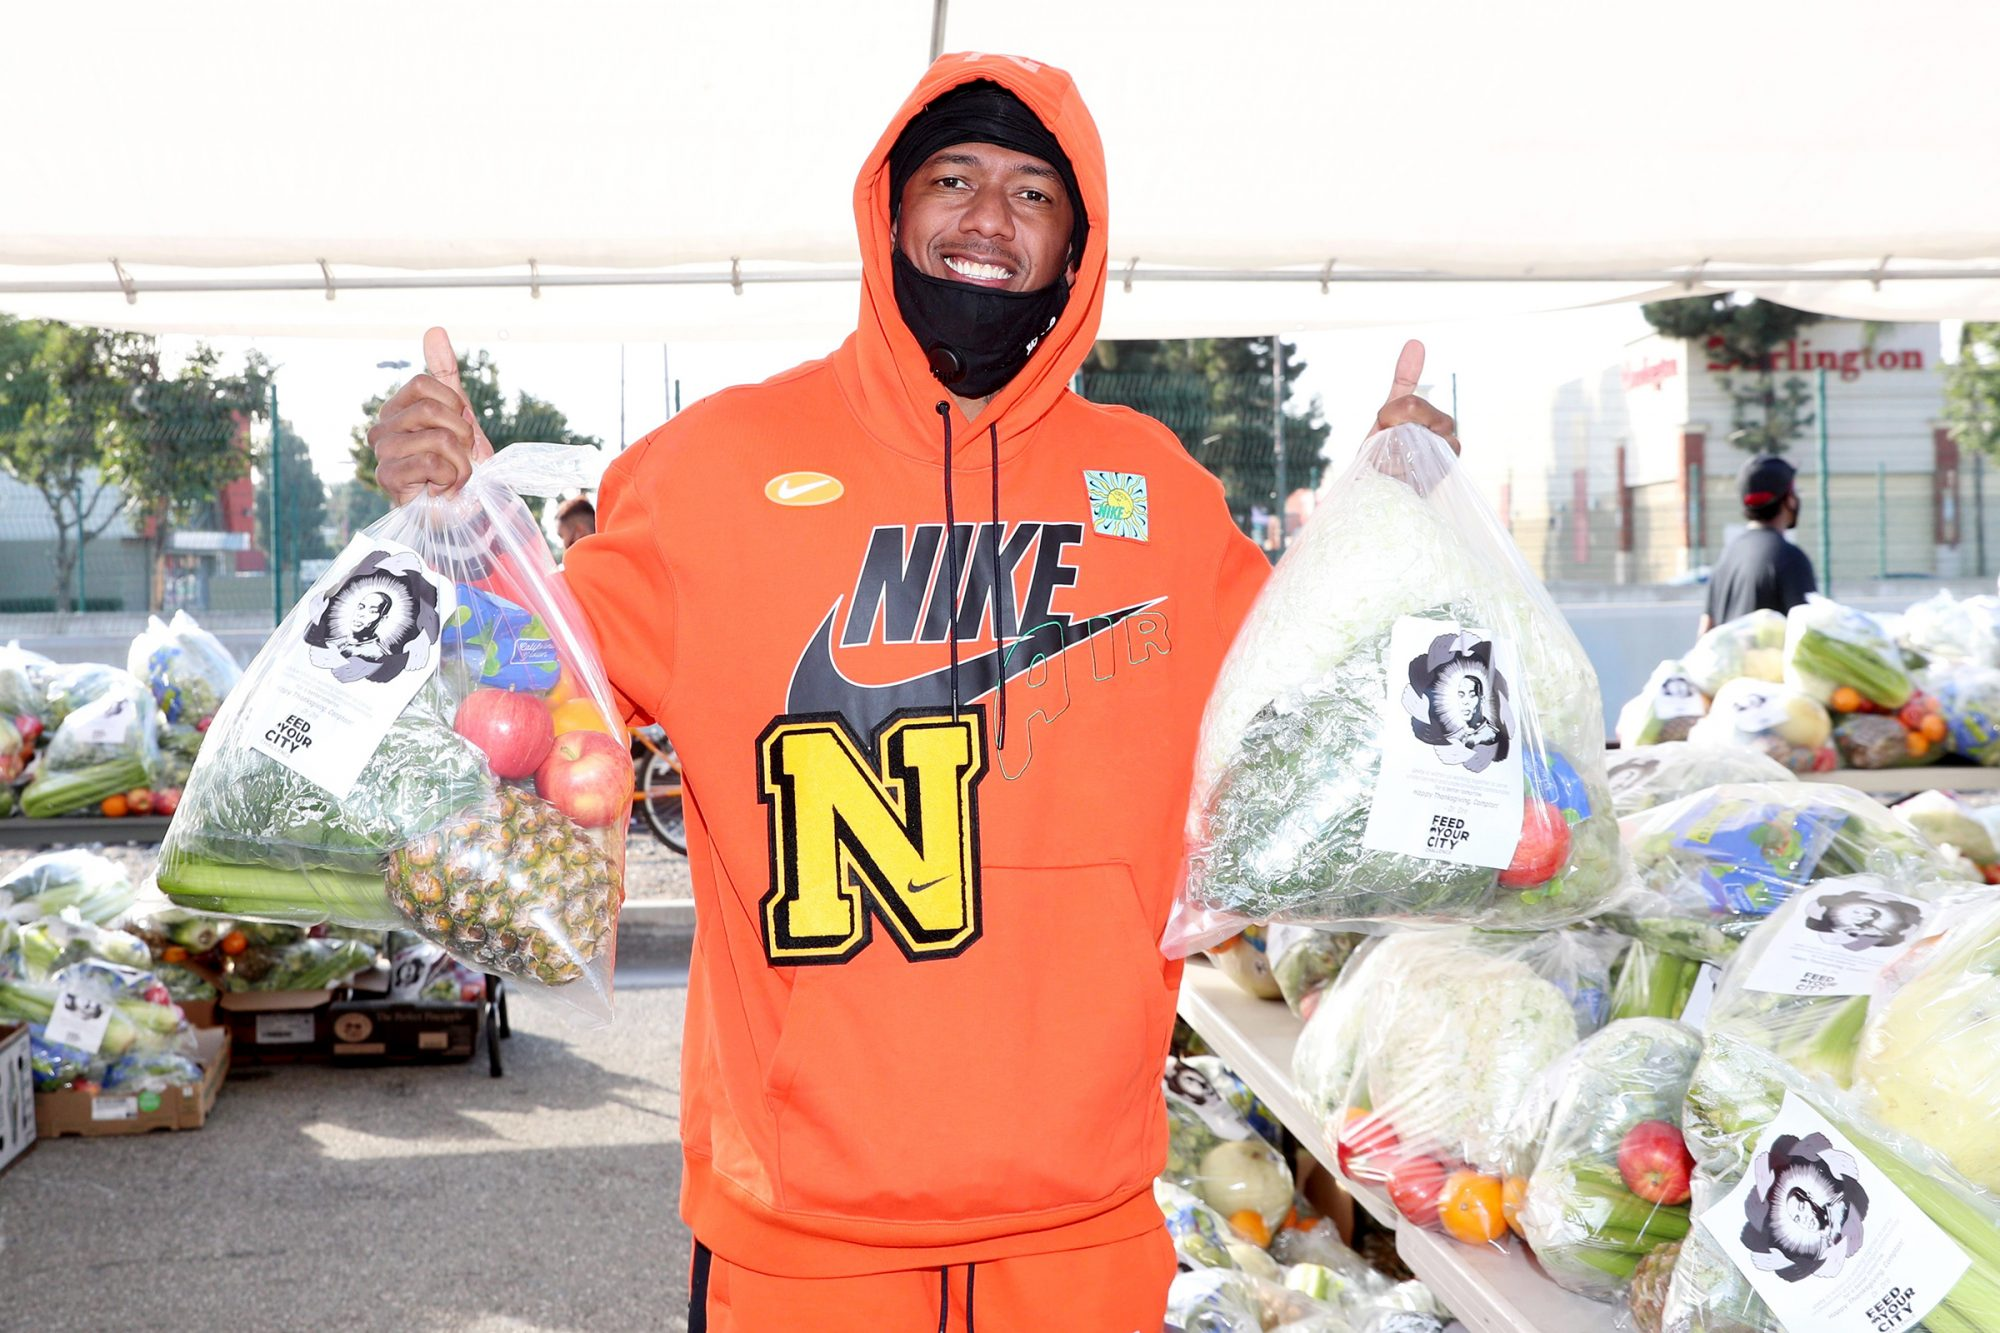 Nick Cannon 'Feed Your City Challenge' food drive, Los Angeles, USA - 21 Nov 2020